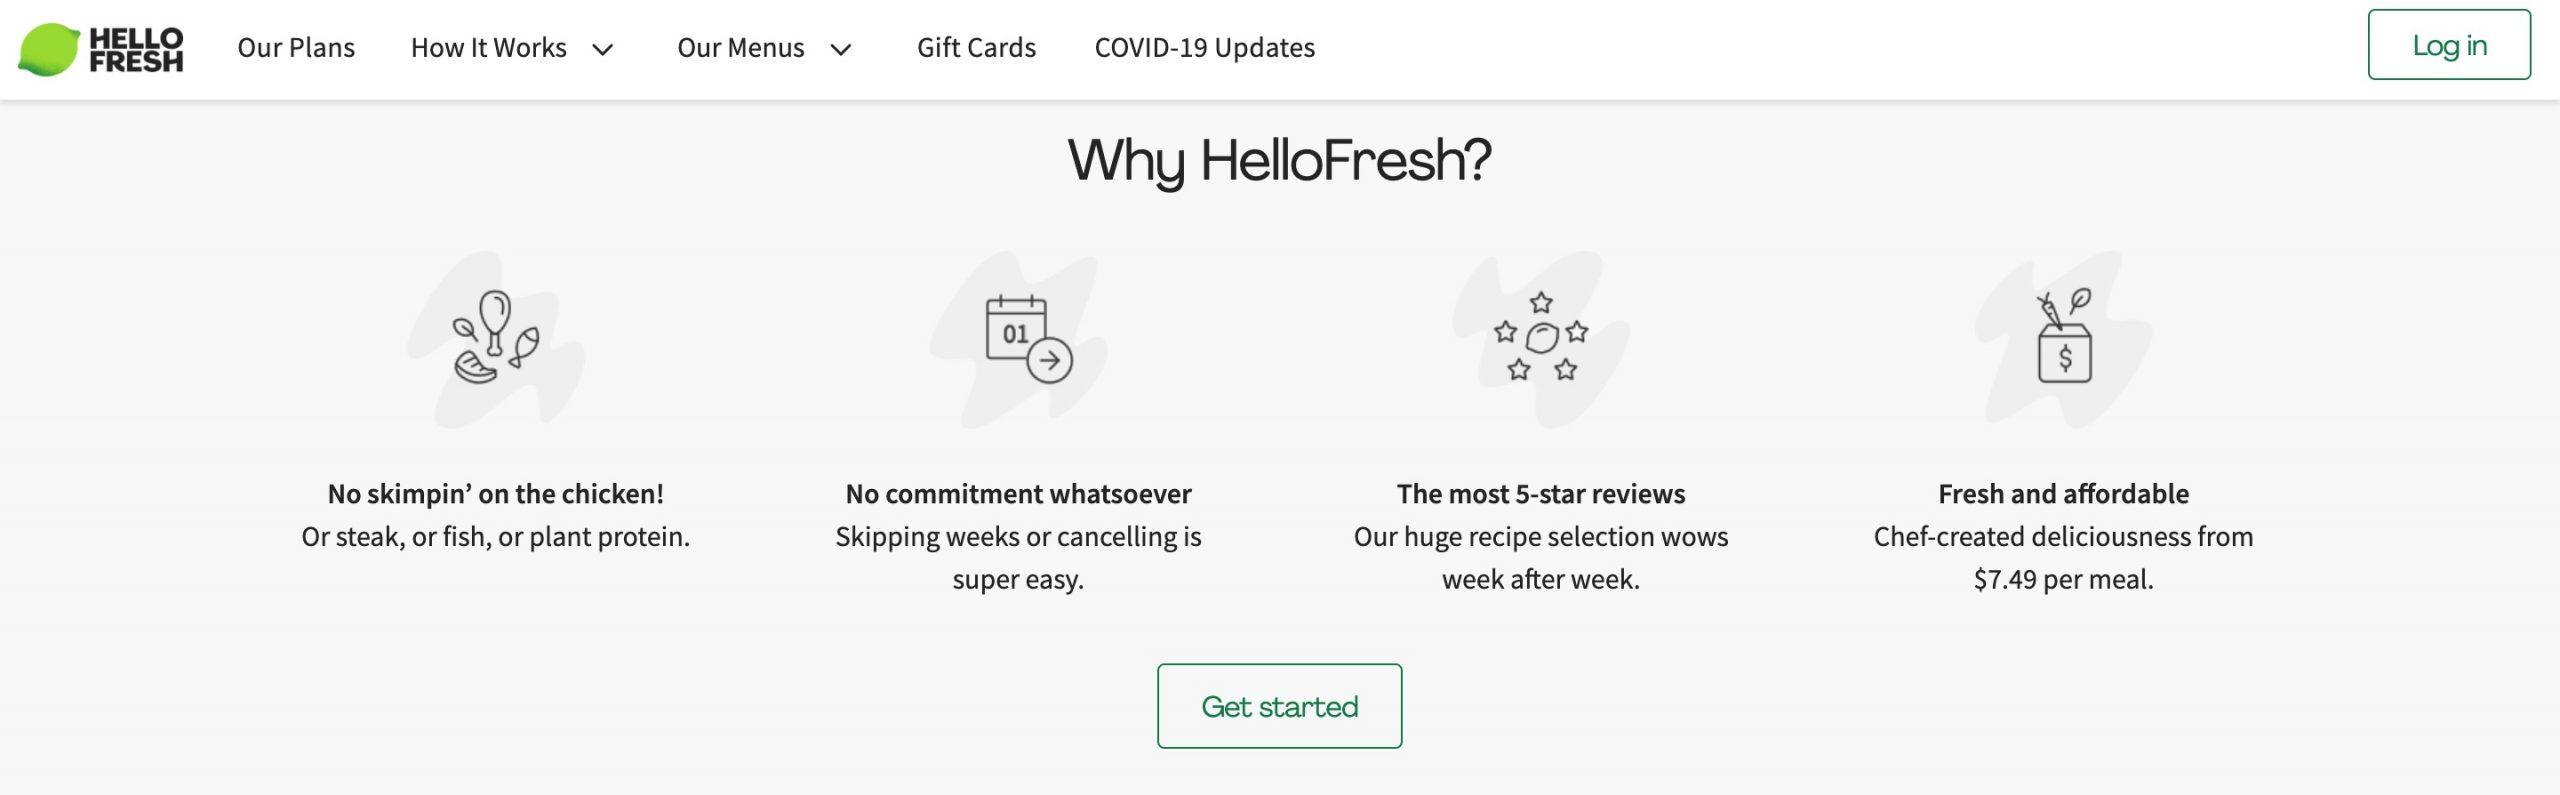 Hello Fresh features